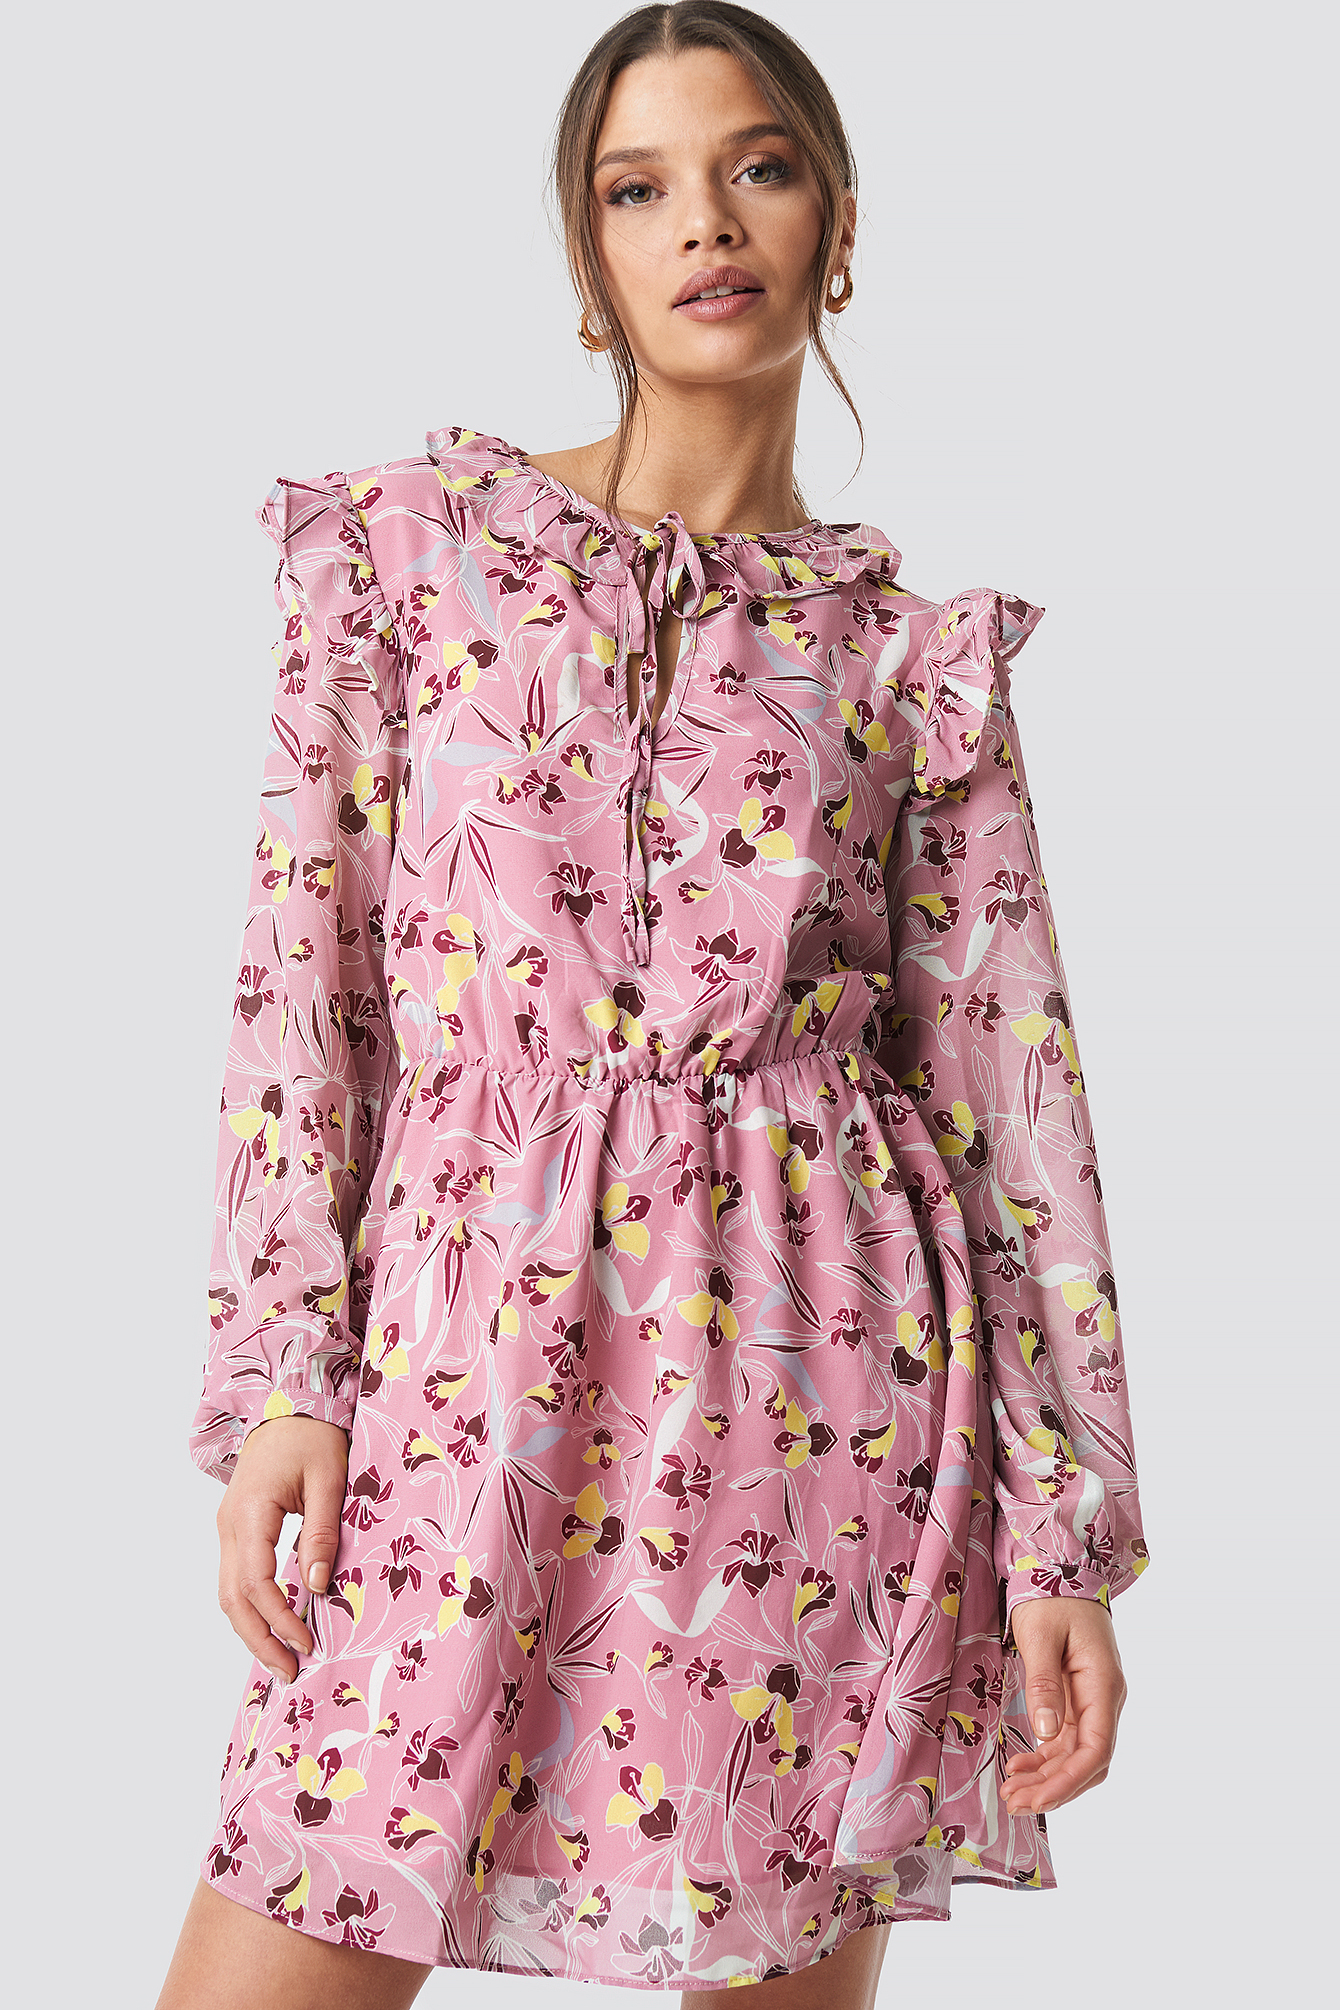 Glamorous Flower Printed Mini Dress - Multicolor In Mauve Floral